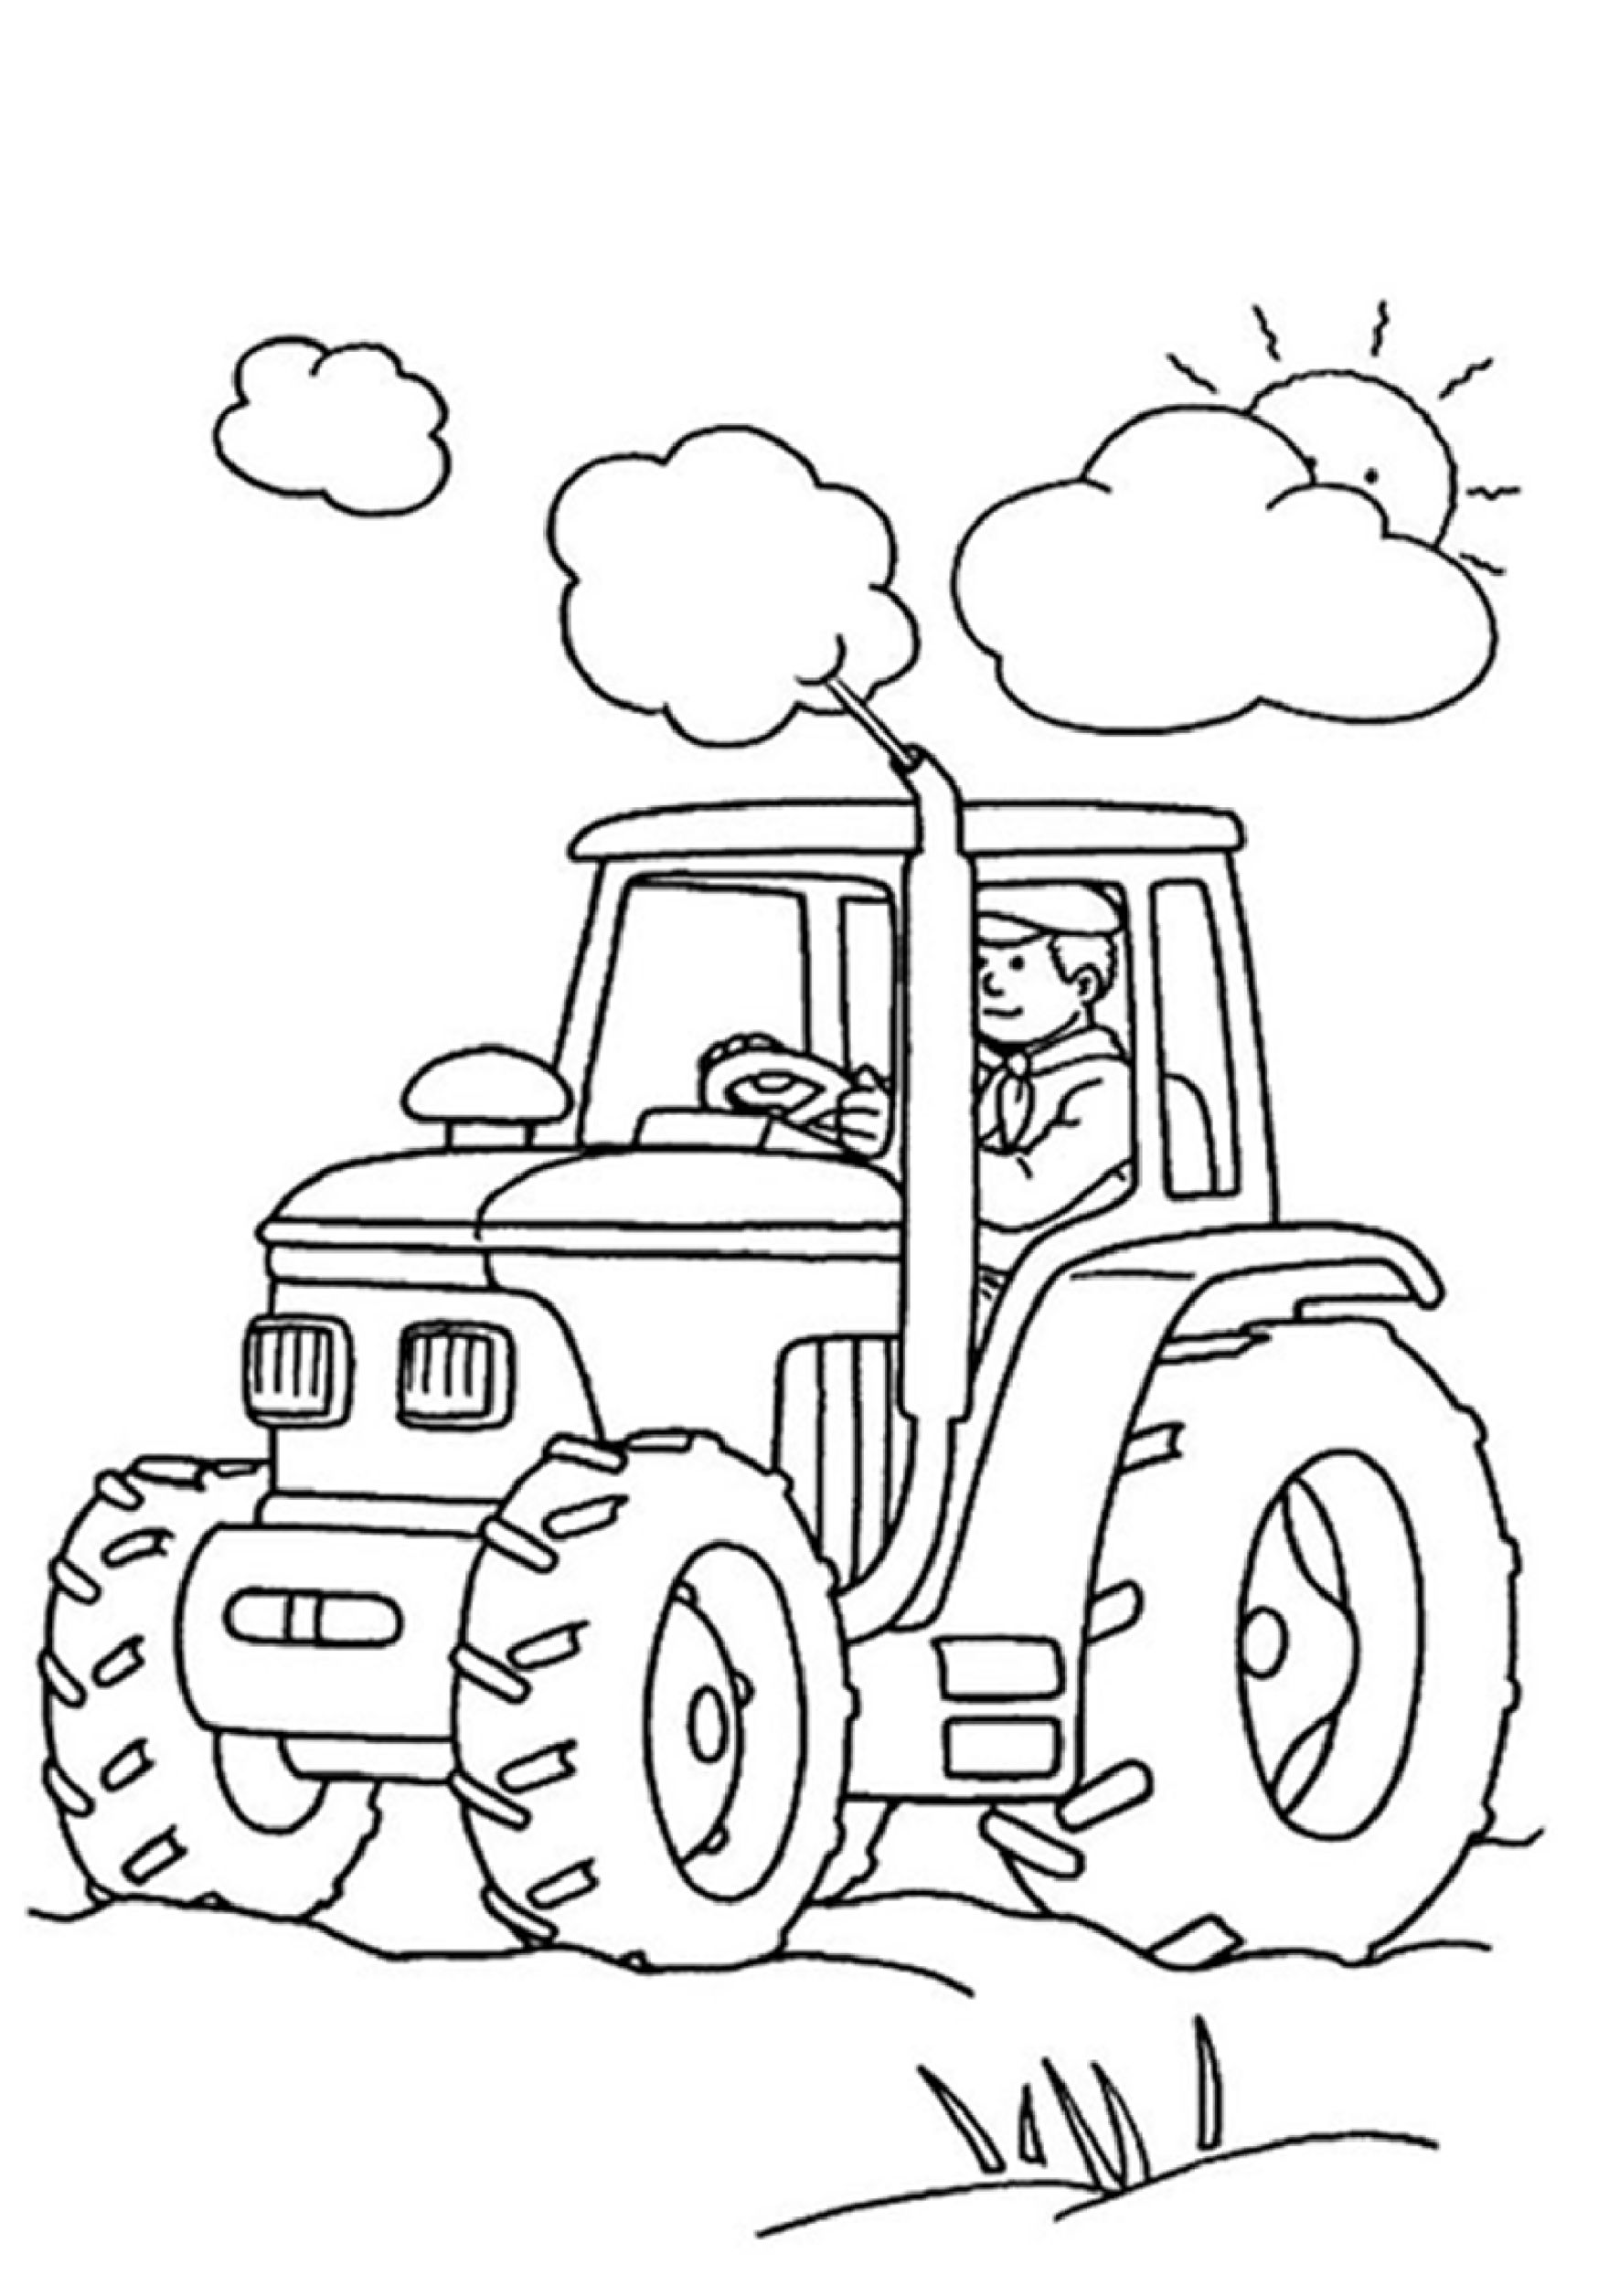 Coloring Pages Pdf For Kids